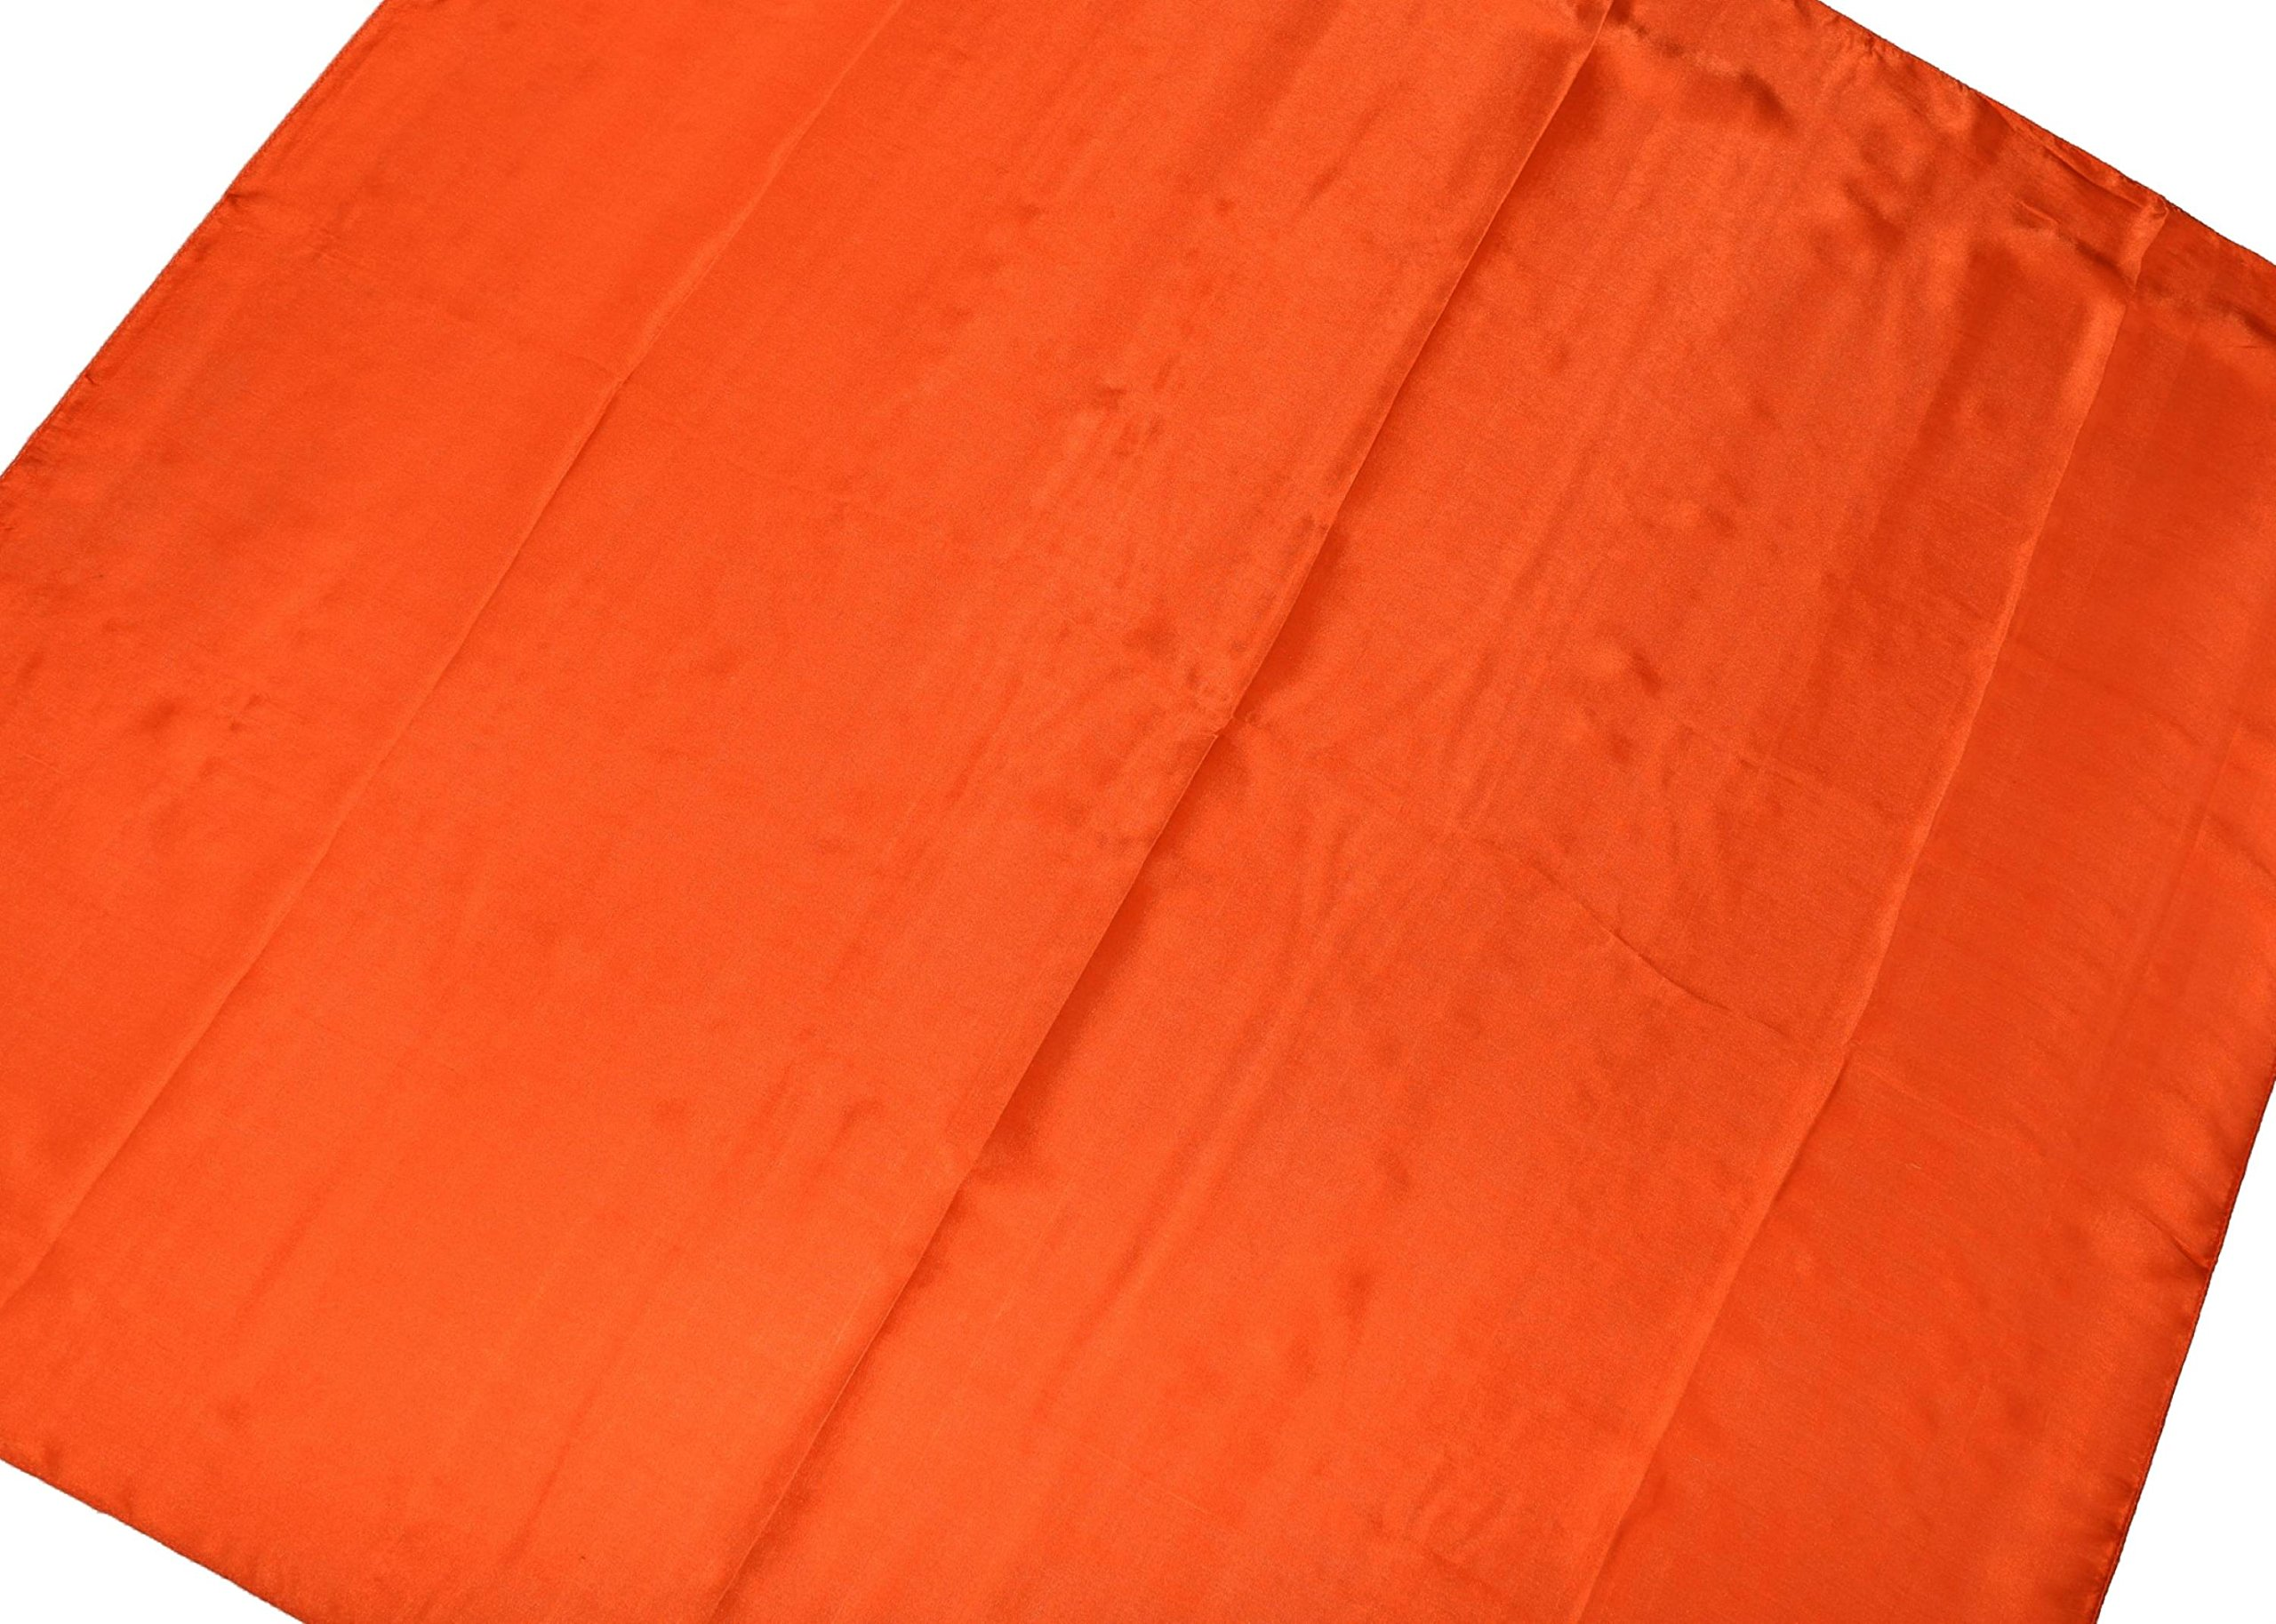 Orange Fine Silk Square Scarf by Bees Knees Fashion (Image #3)